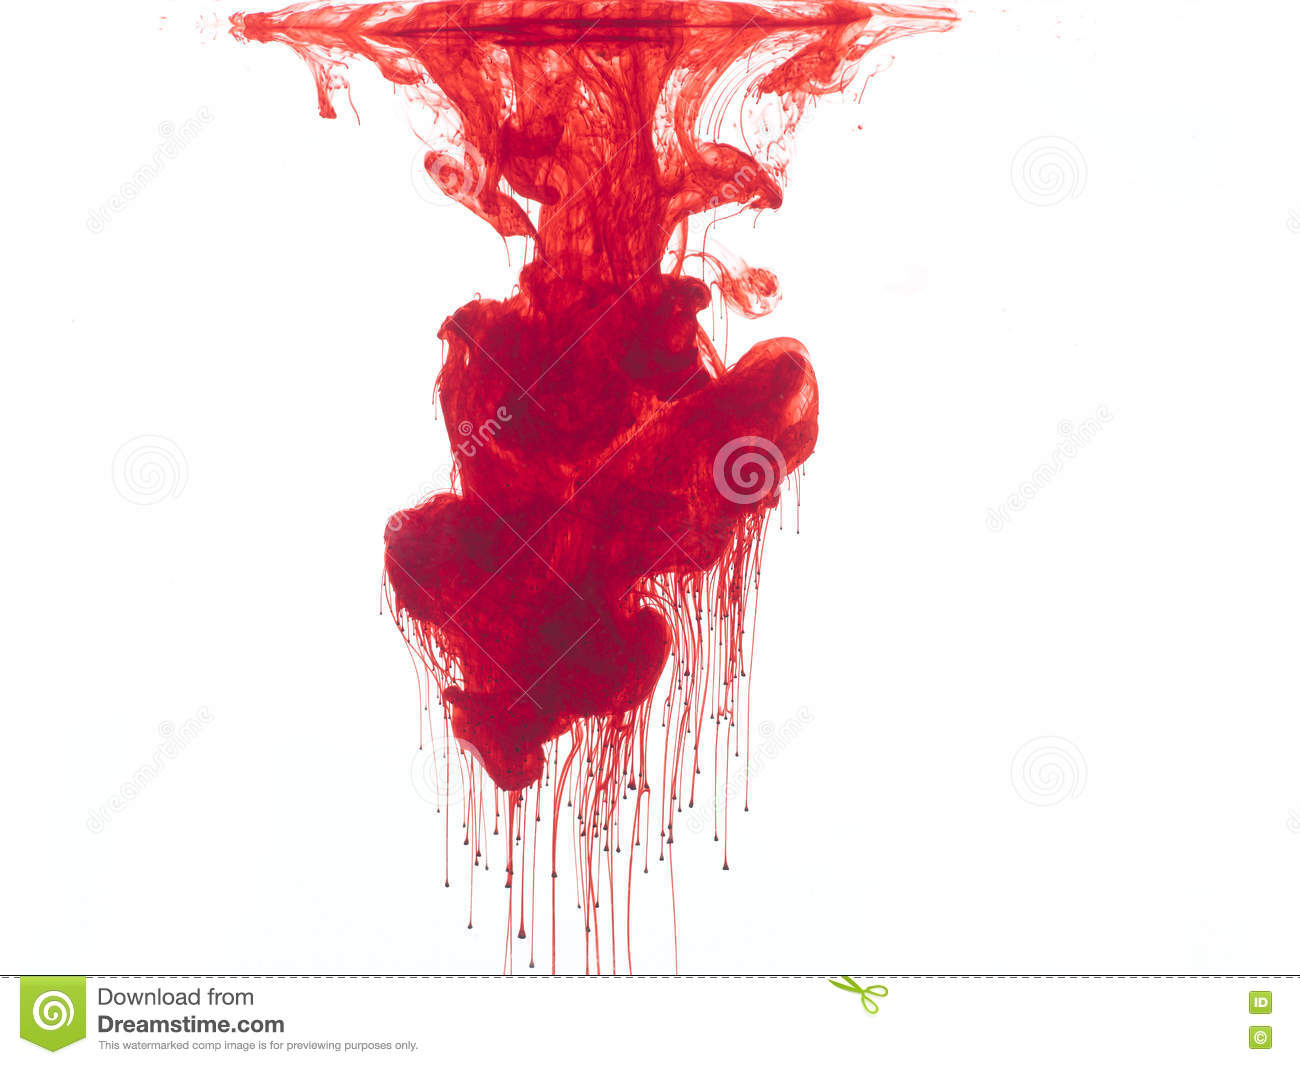 Download Red color in water stock image. Image of bleed, blood - 71950543